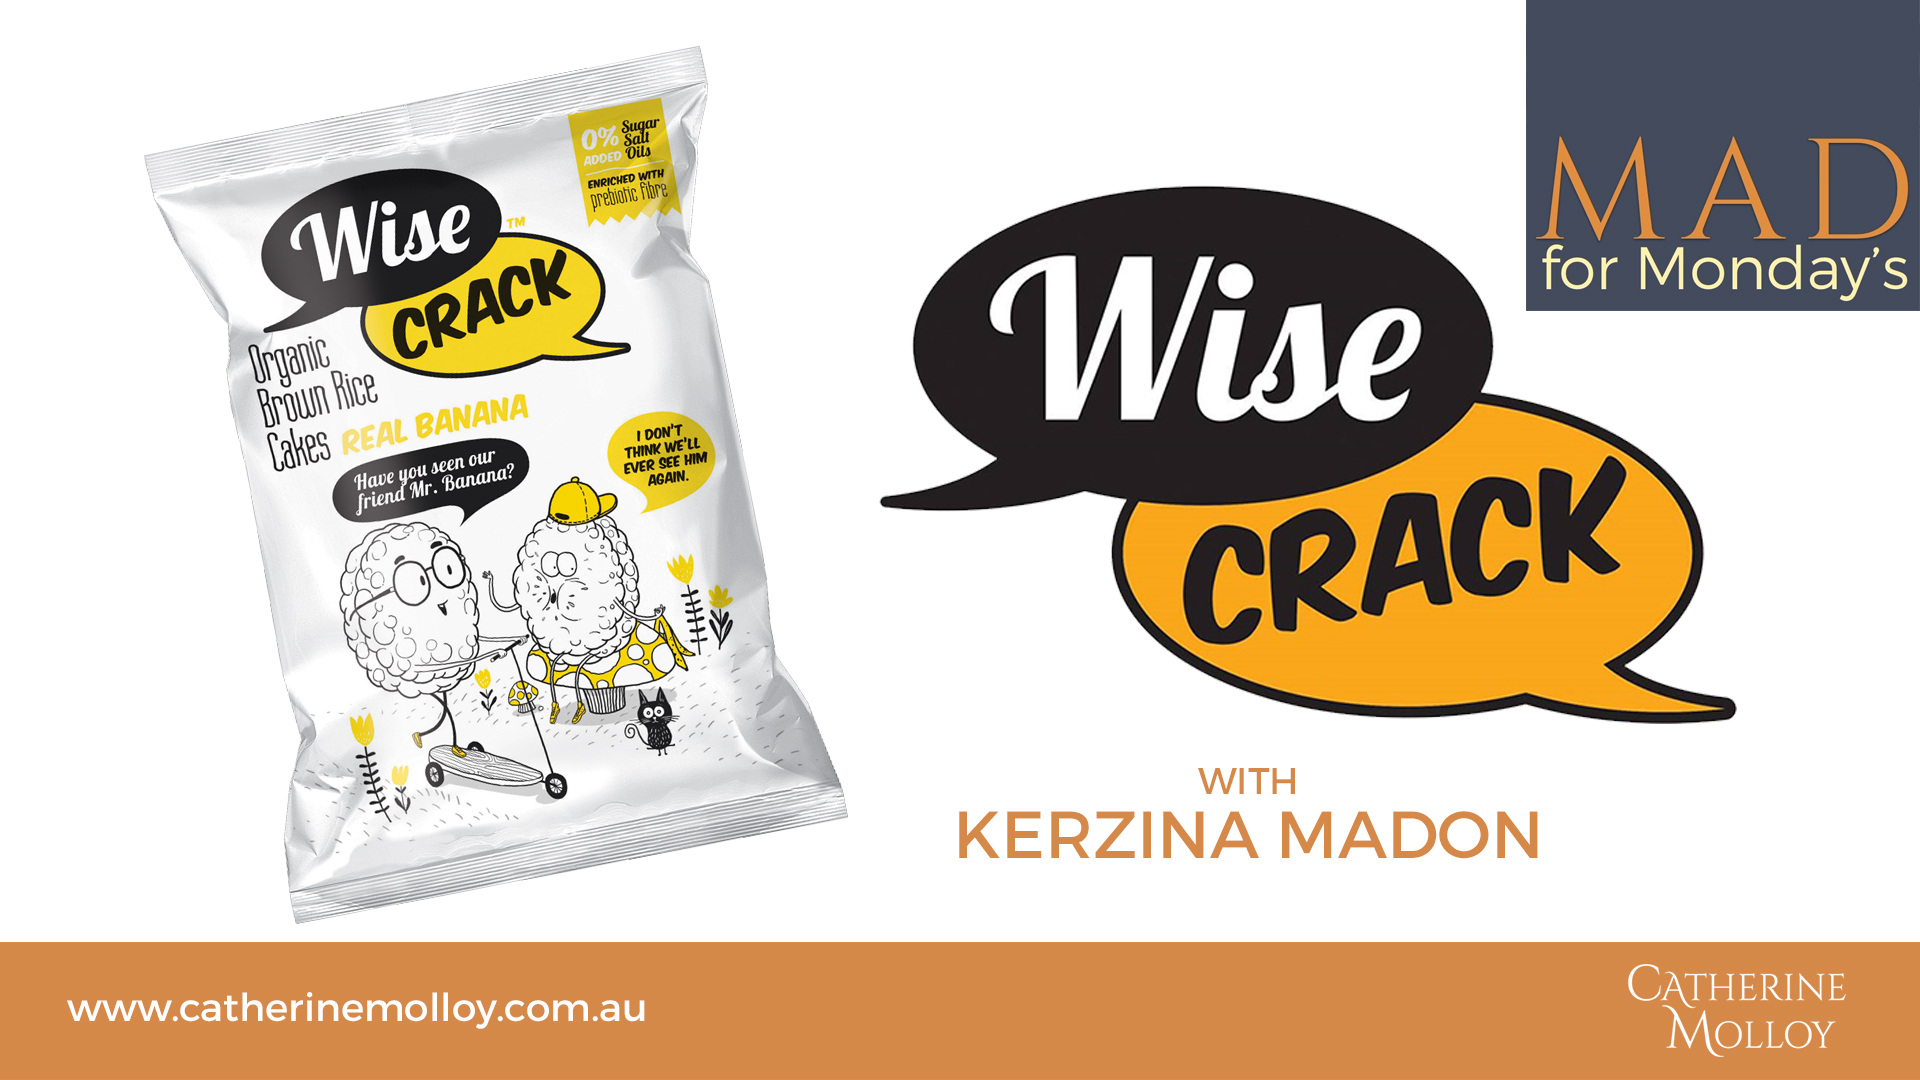 MAD for Monday's – Wise Crack